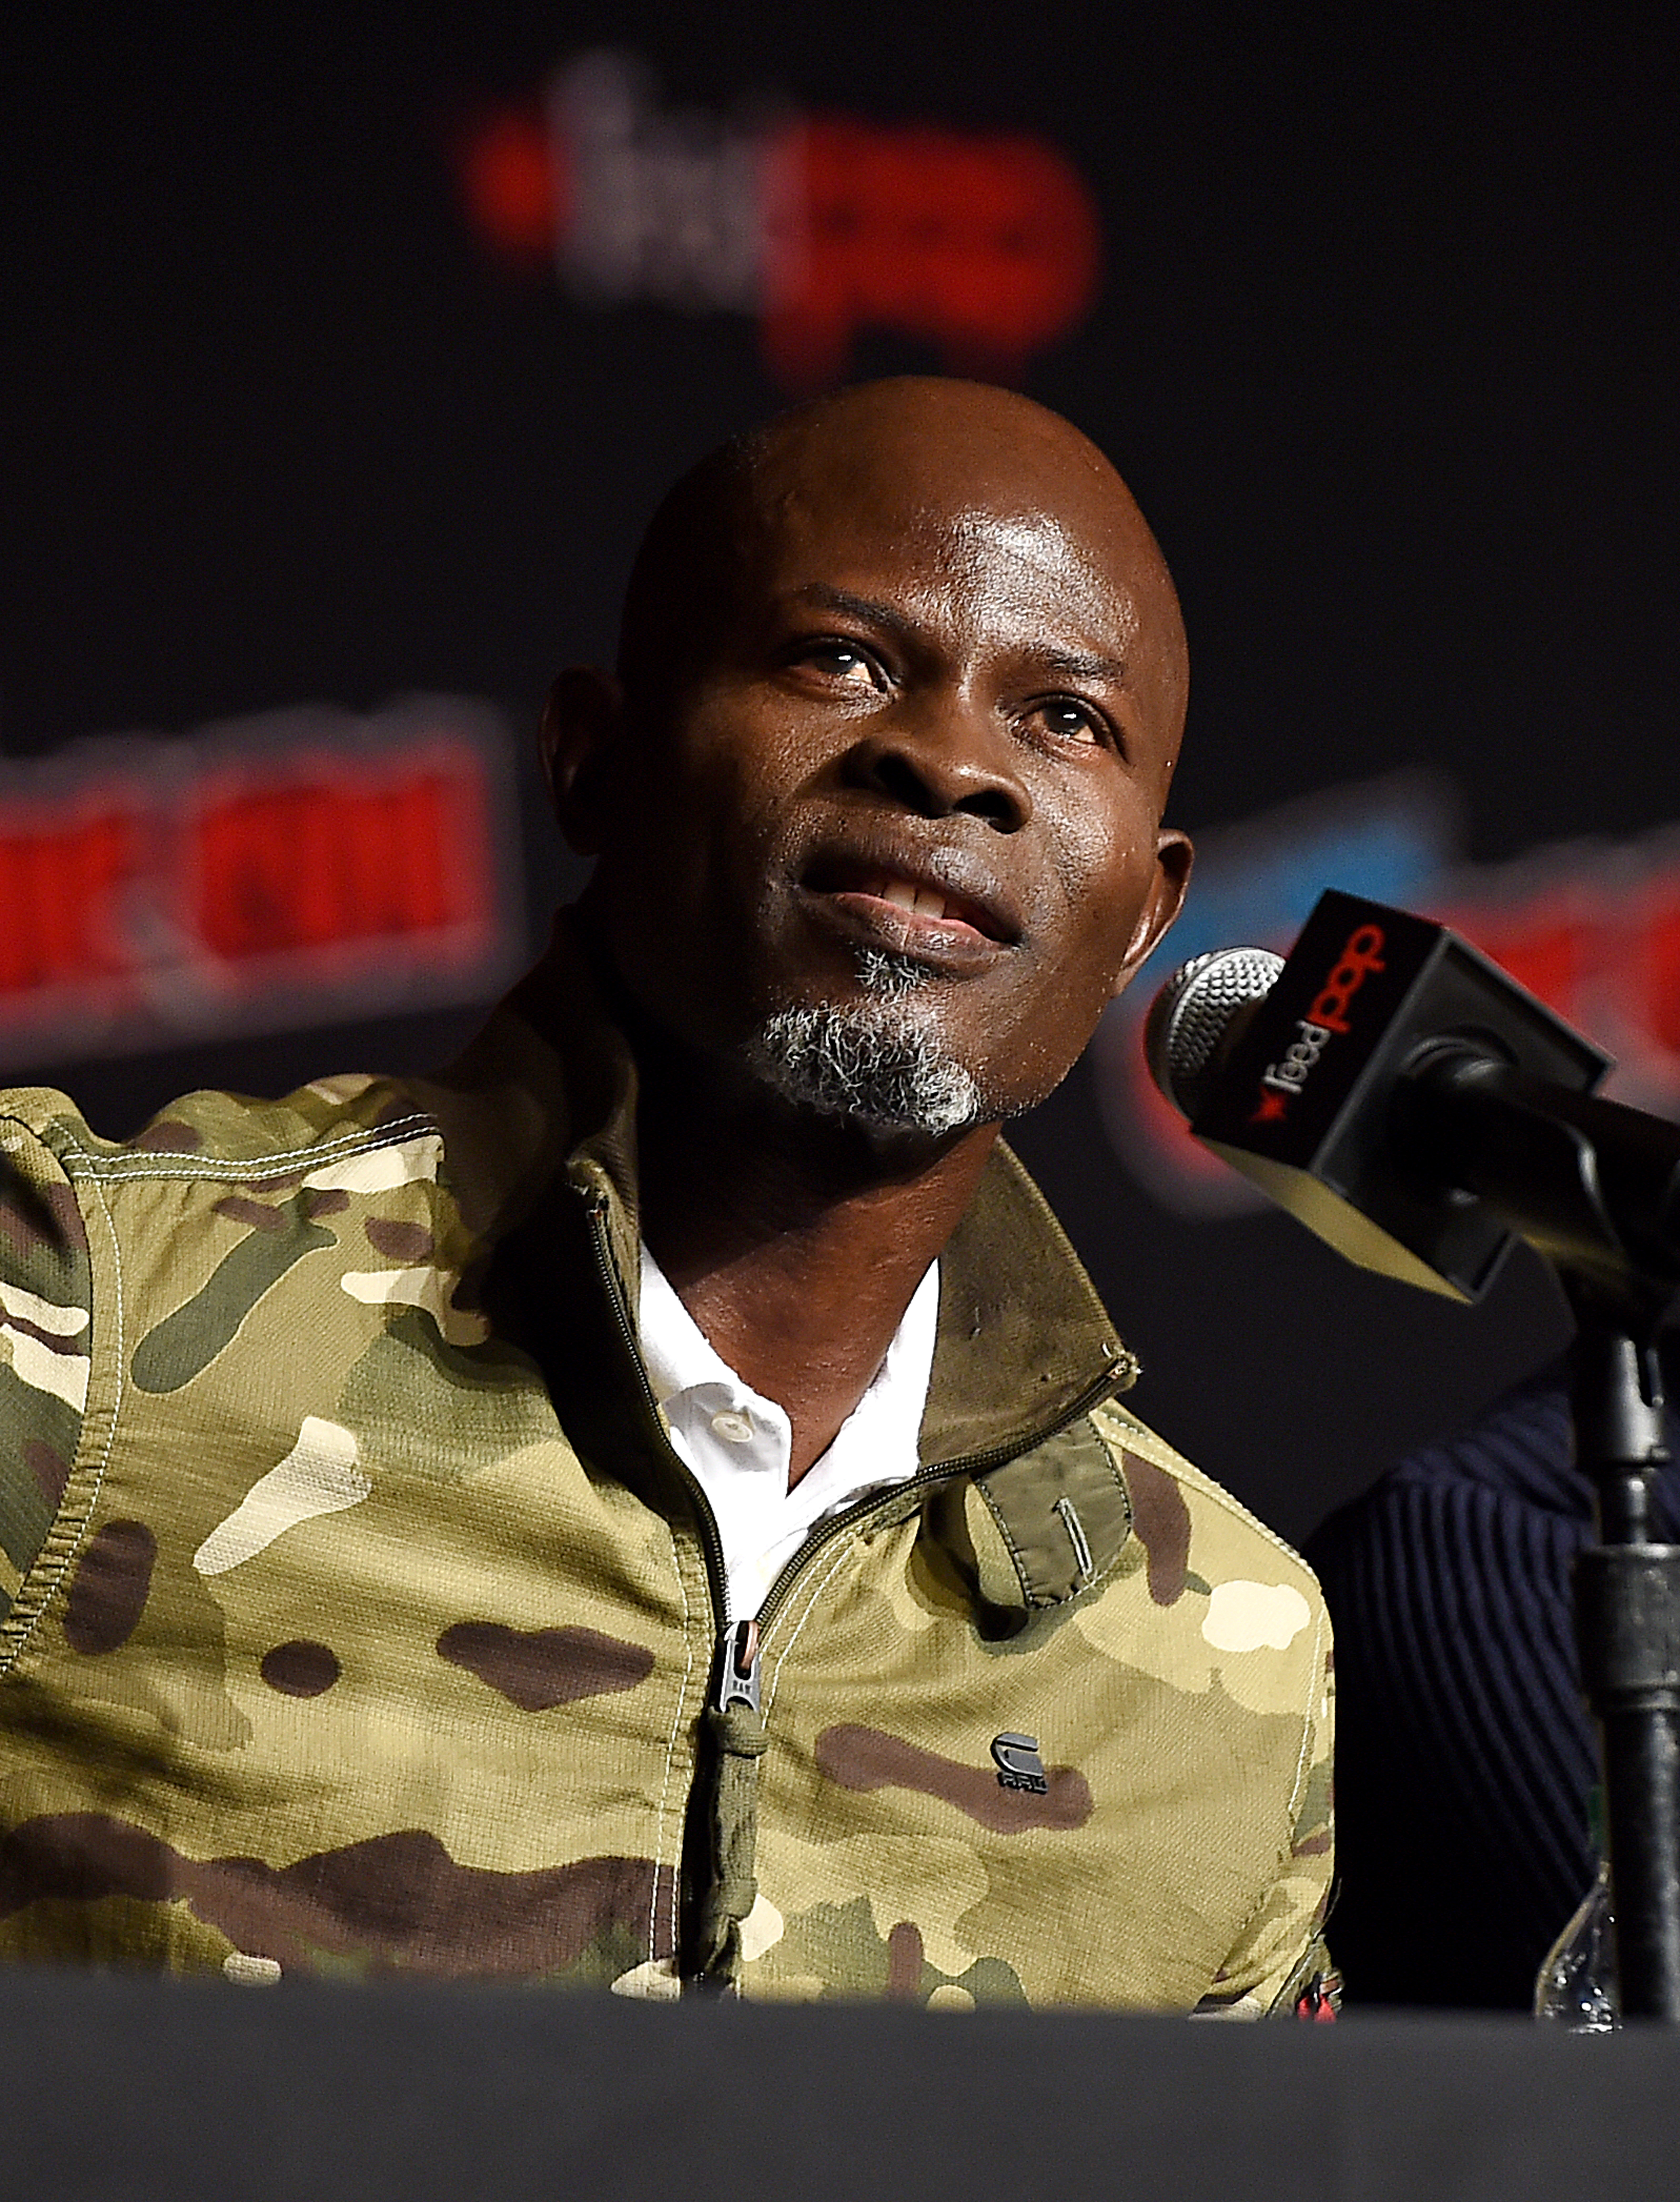 Djimon Hounsou at an event for The King's Man (2021)